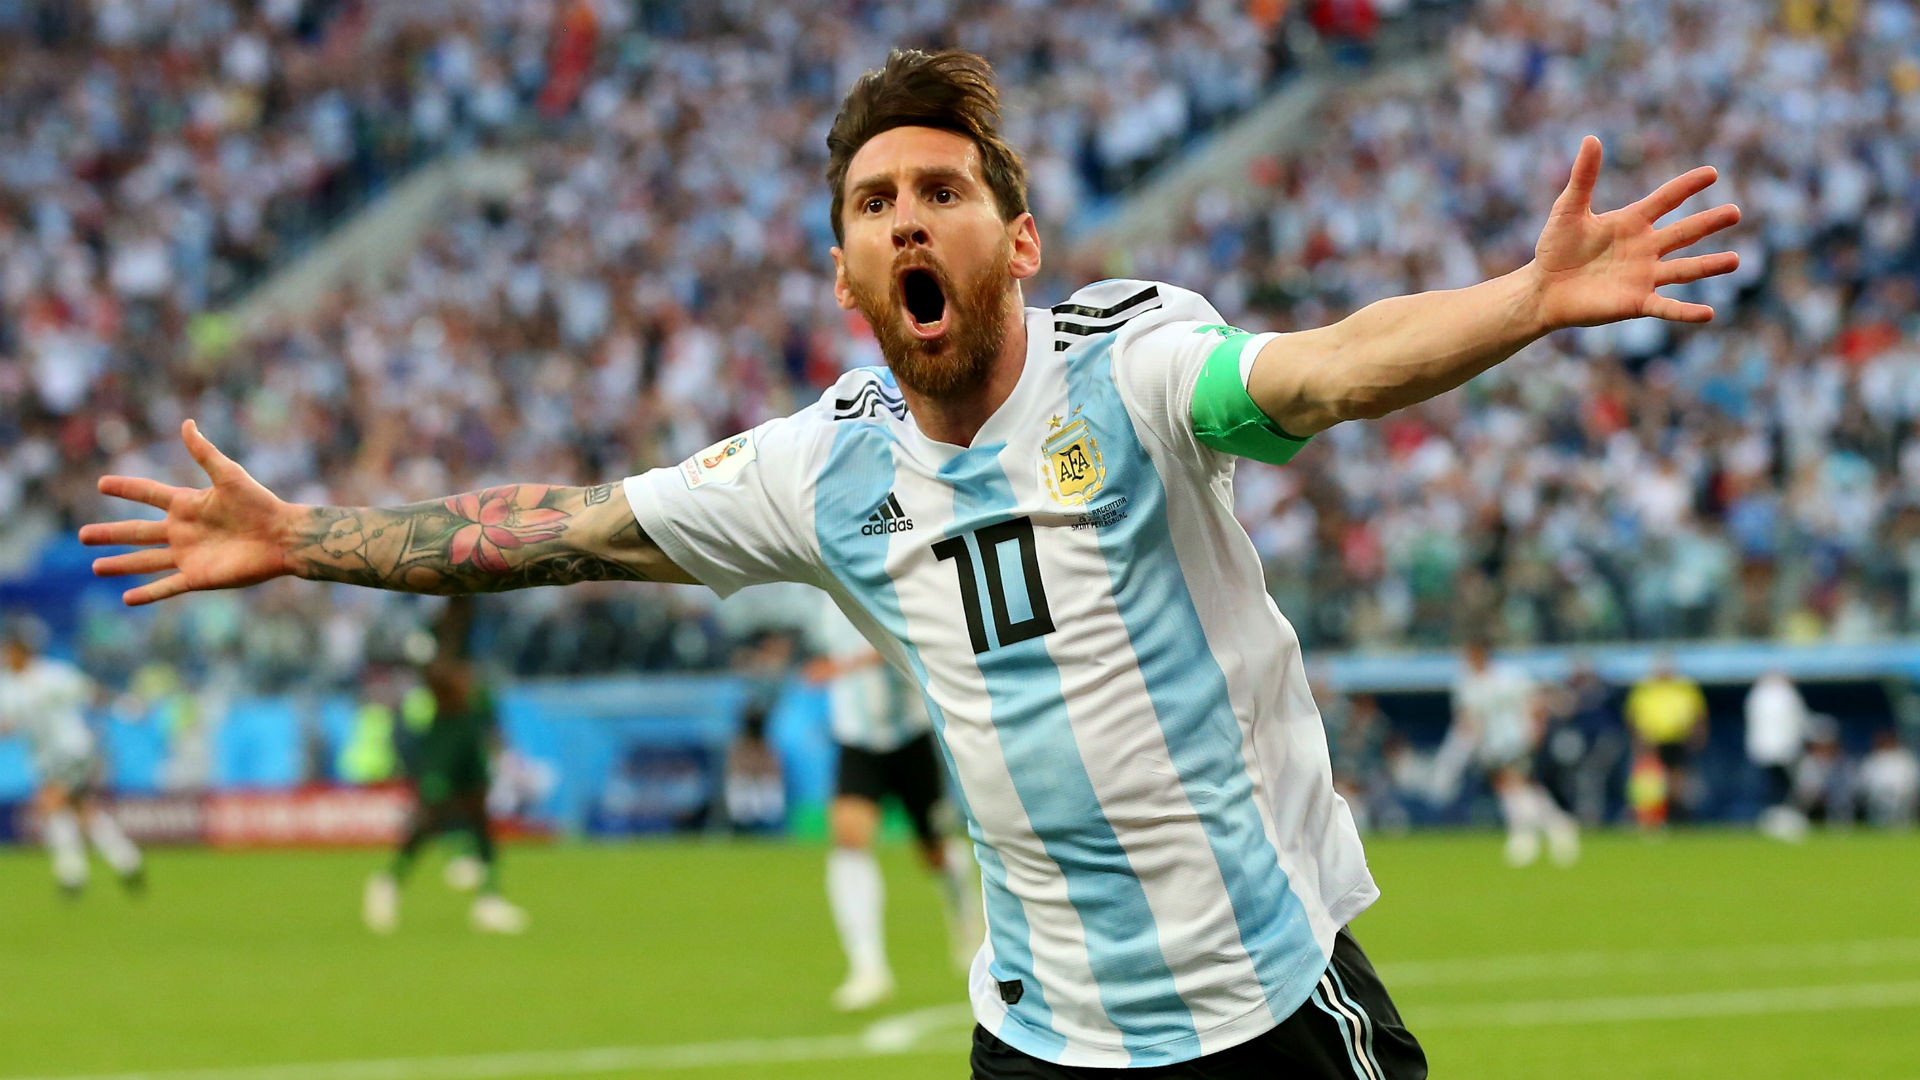 Argentina starting eleven confirmed, Lionel MESSI and Gonzalo HIGUAIN start